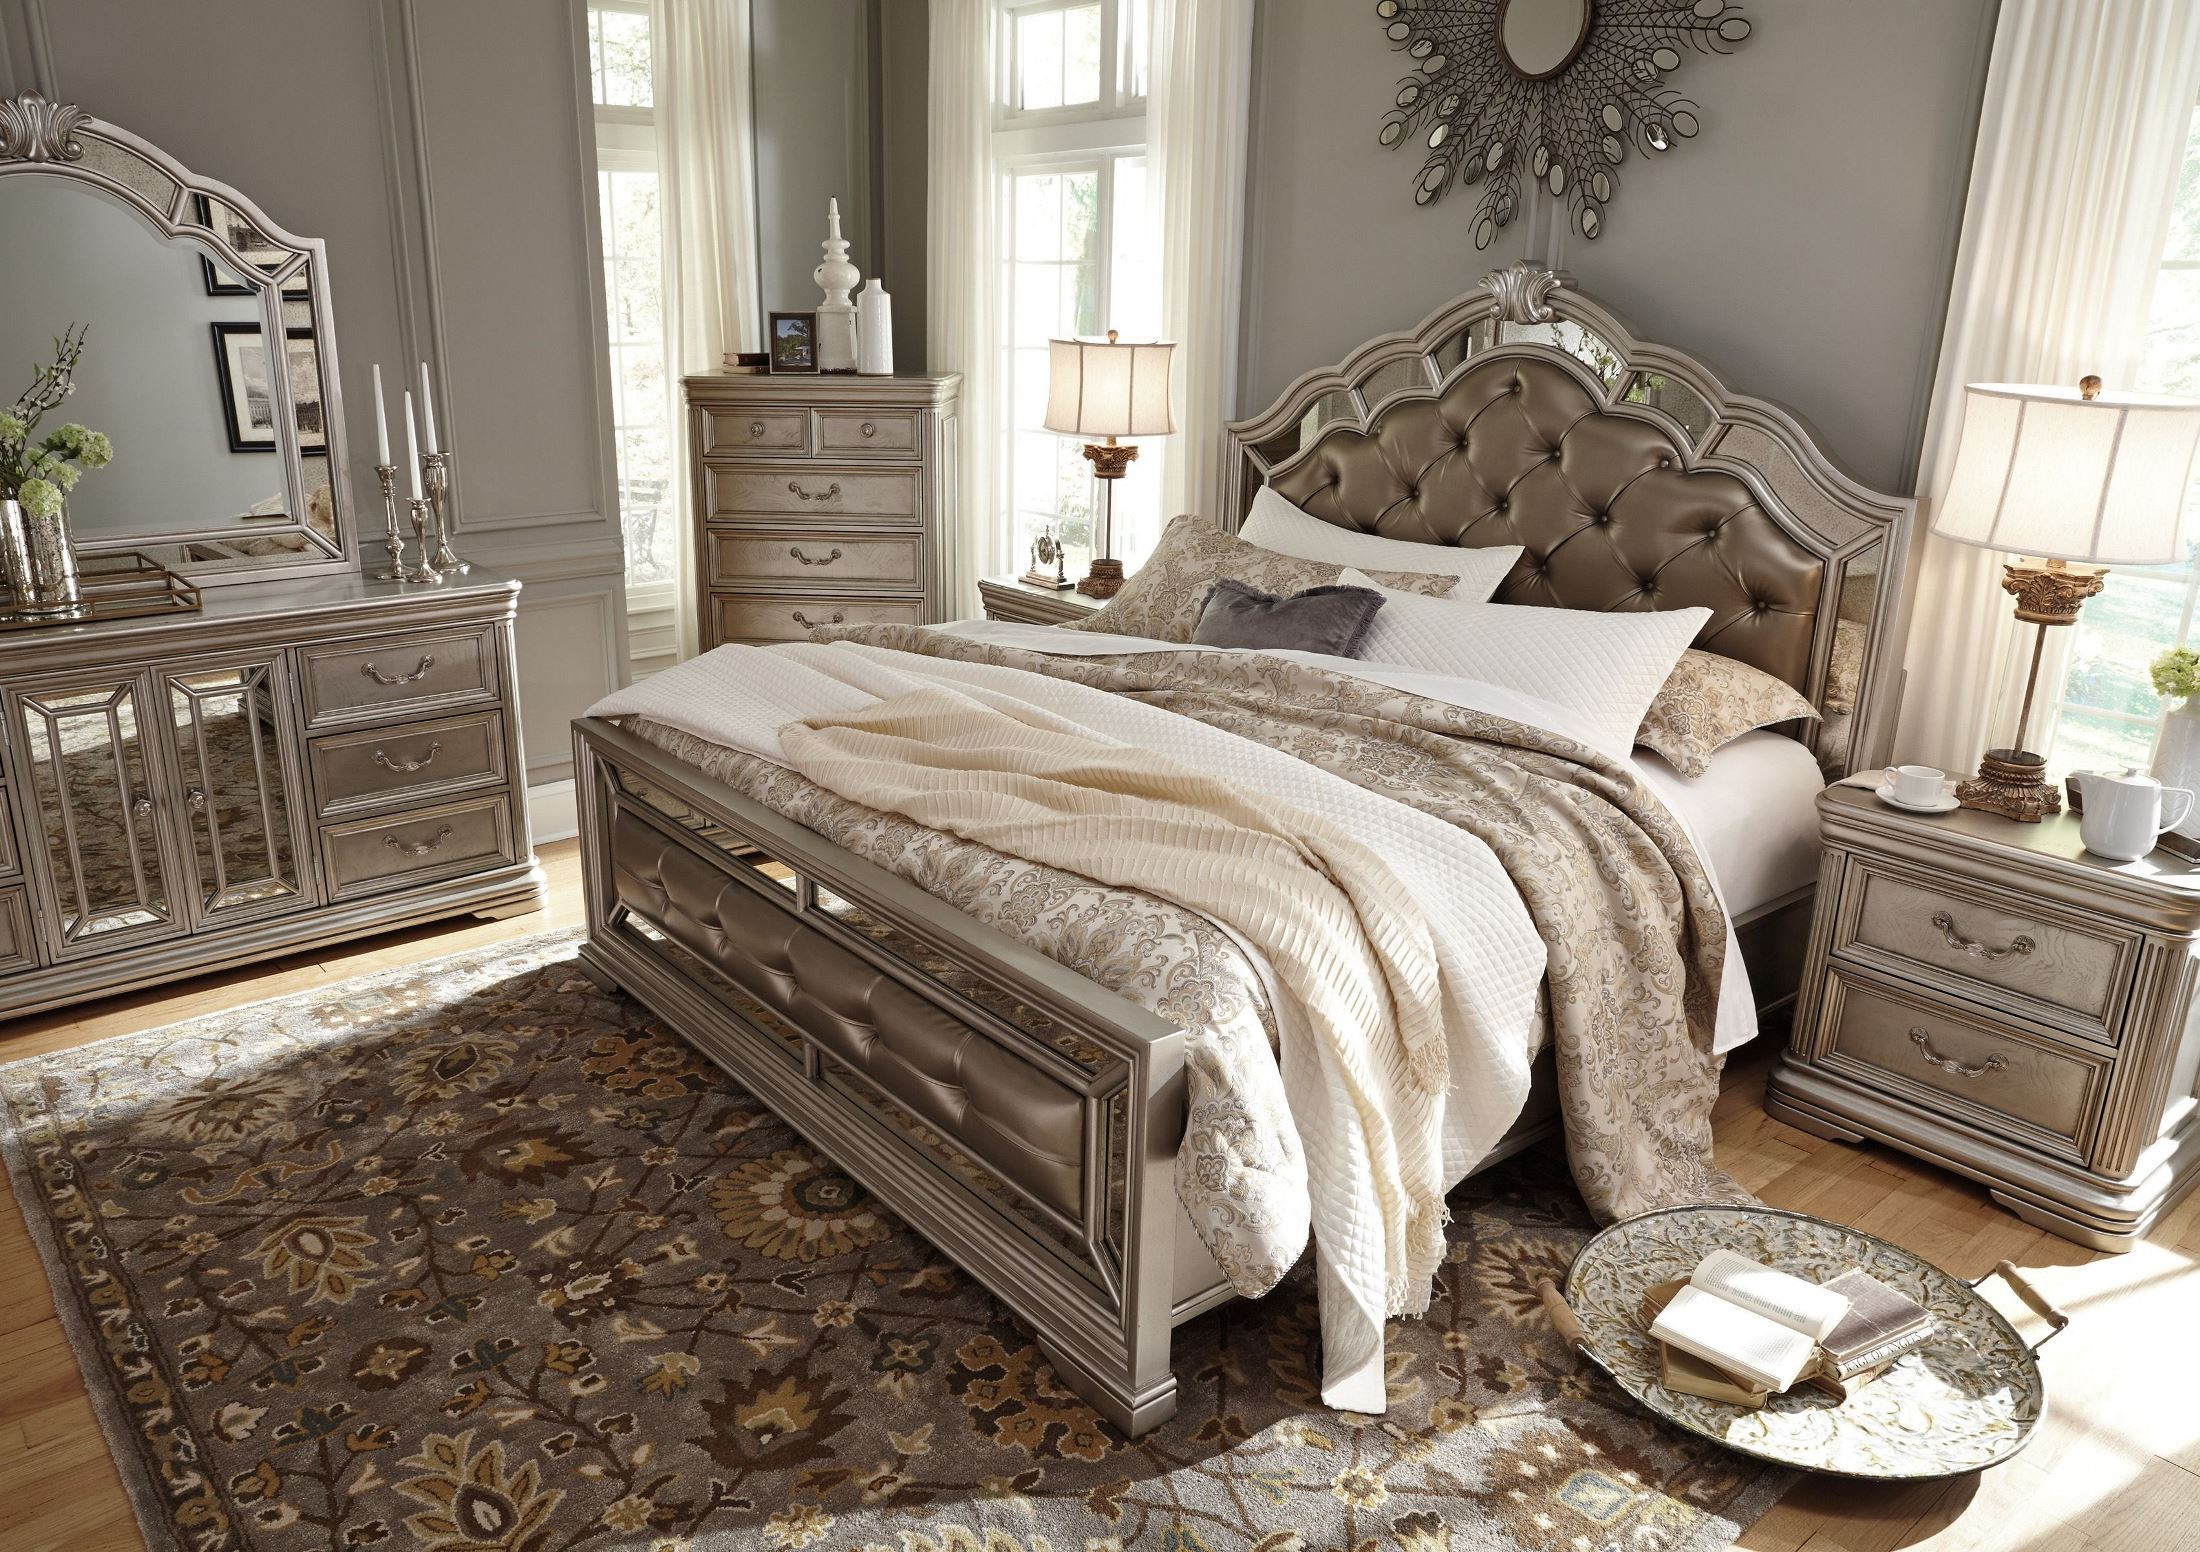 Birlanny Silver King Upholstered Panel Bed From Ashley